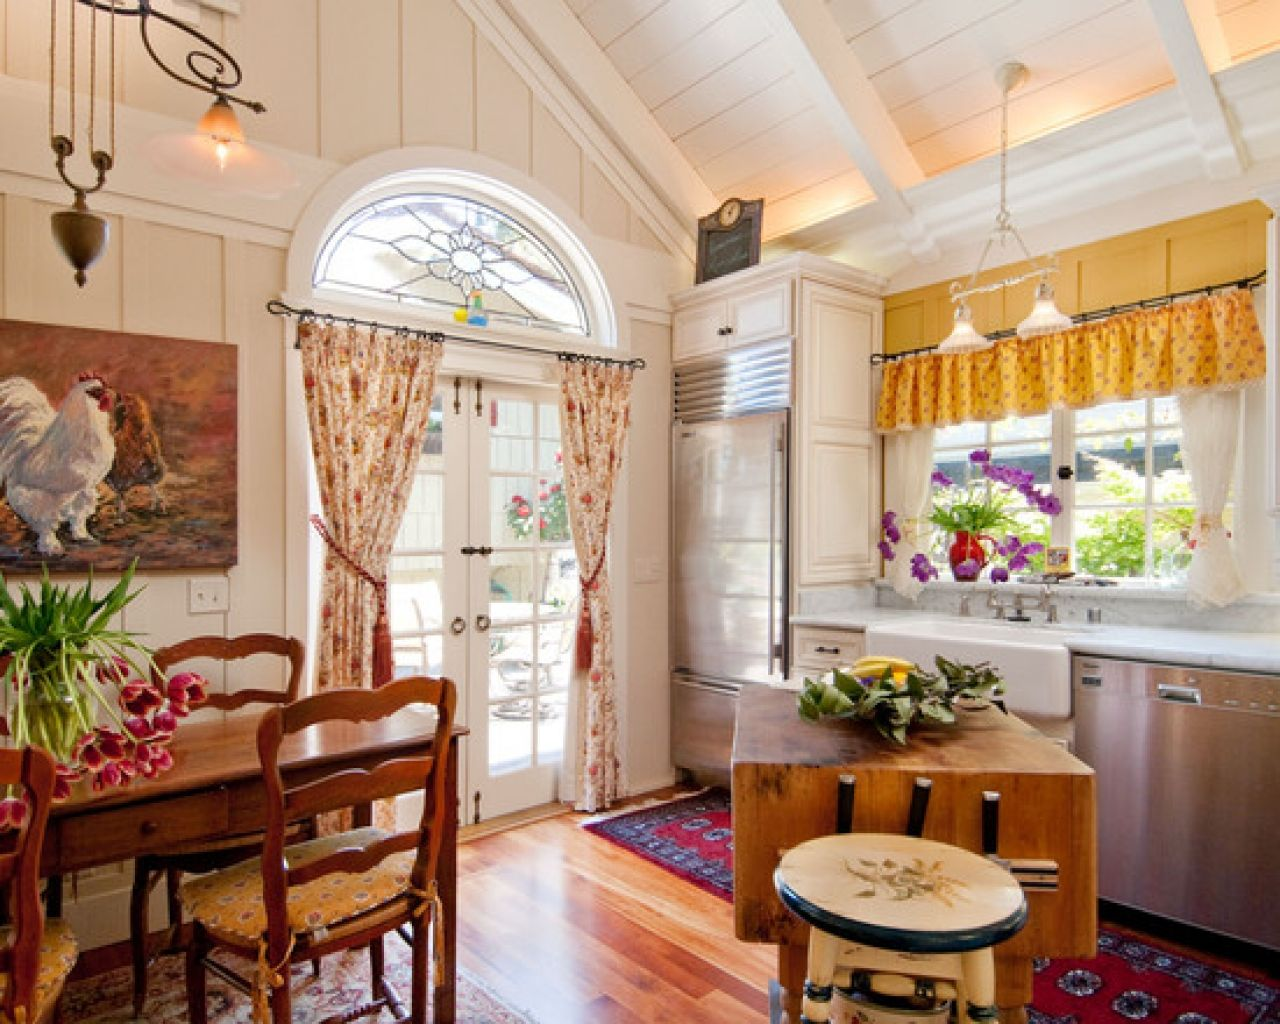 french country decorating | French country kitchen decorating ideas design pictures remodel-perfect kitchen